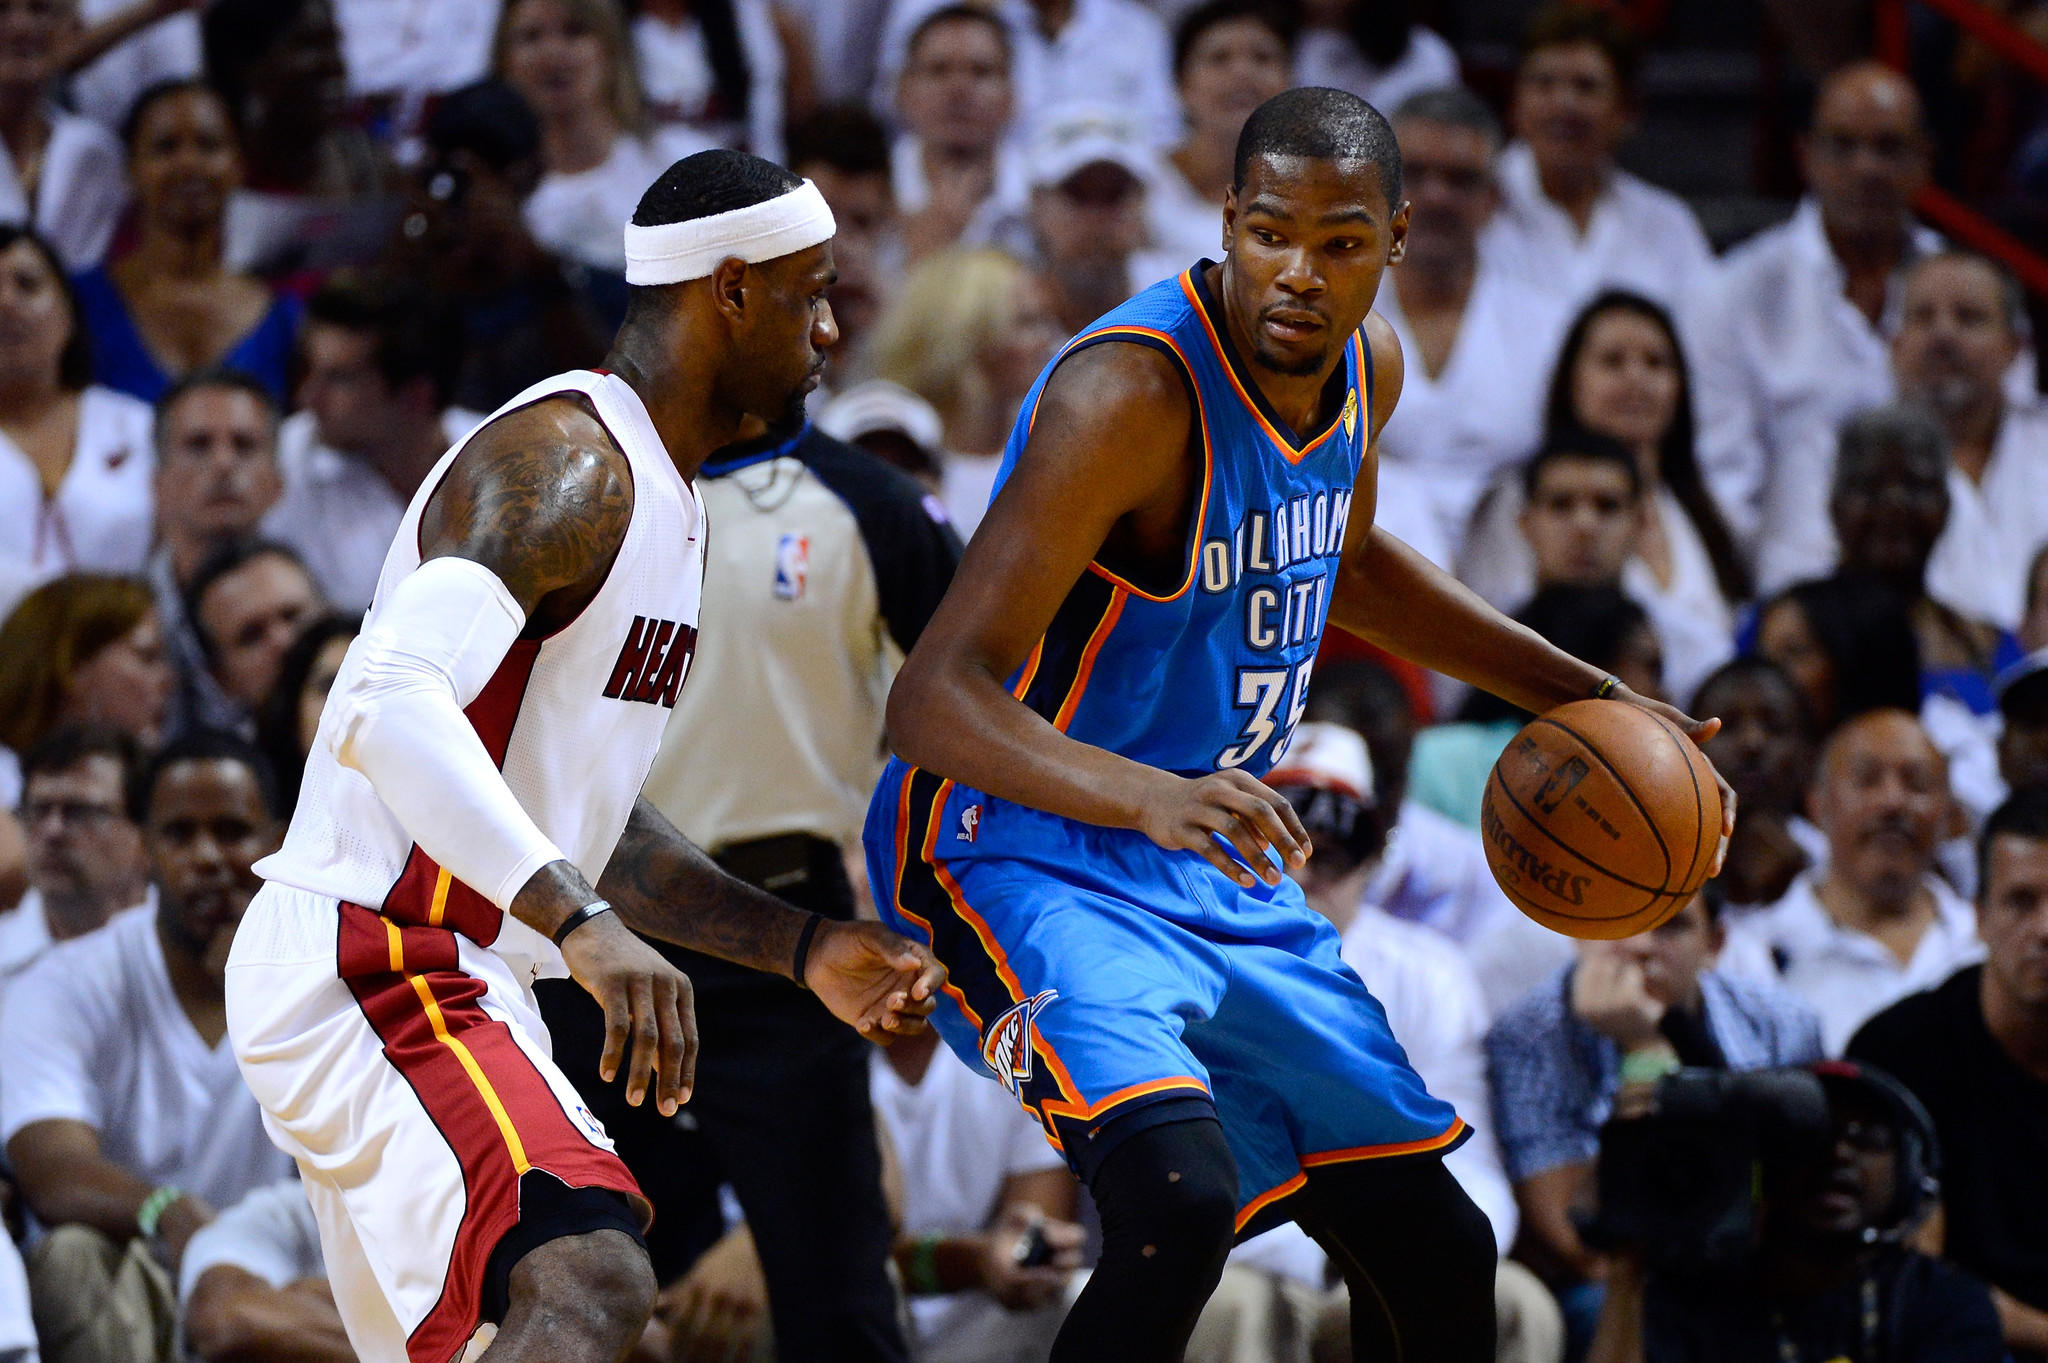 MIAMI, FL - JUNE 21: Kevin Durant #35 of the Oklahoma City Thunder moves the ball in the post in the first quarter against LeBron James #6 of the Miami Heat in Game Five of the 2012 NBA Finals on June 21, 2012 at American Airlines Arena in Miami, Florida. NOTE TO USER: User expressly acknowledges and agrees that, by downloading and or using this photograph, User is consenting to the terms and conditions of the Getty Images License Agreement.